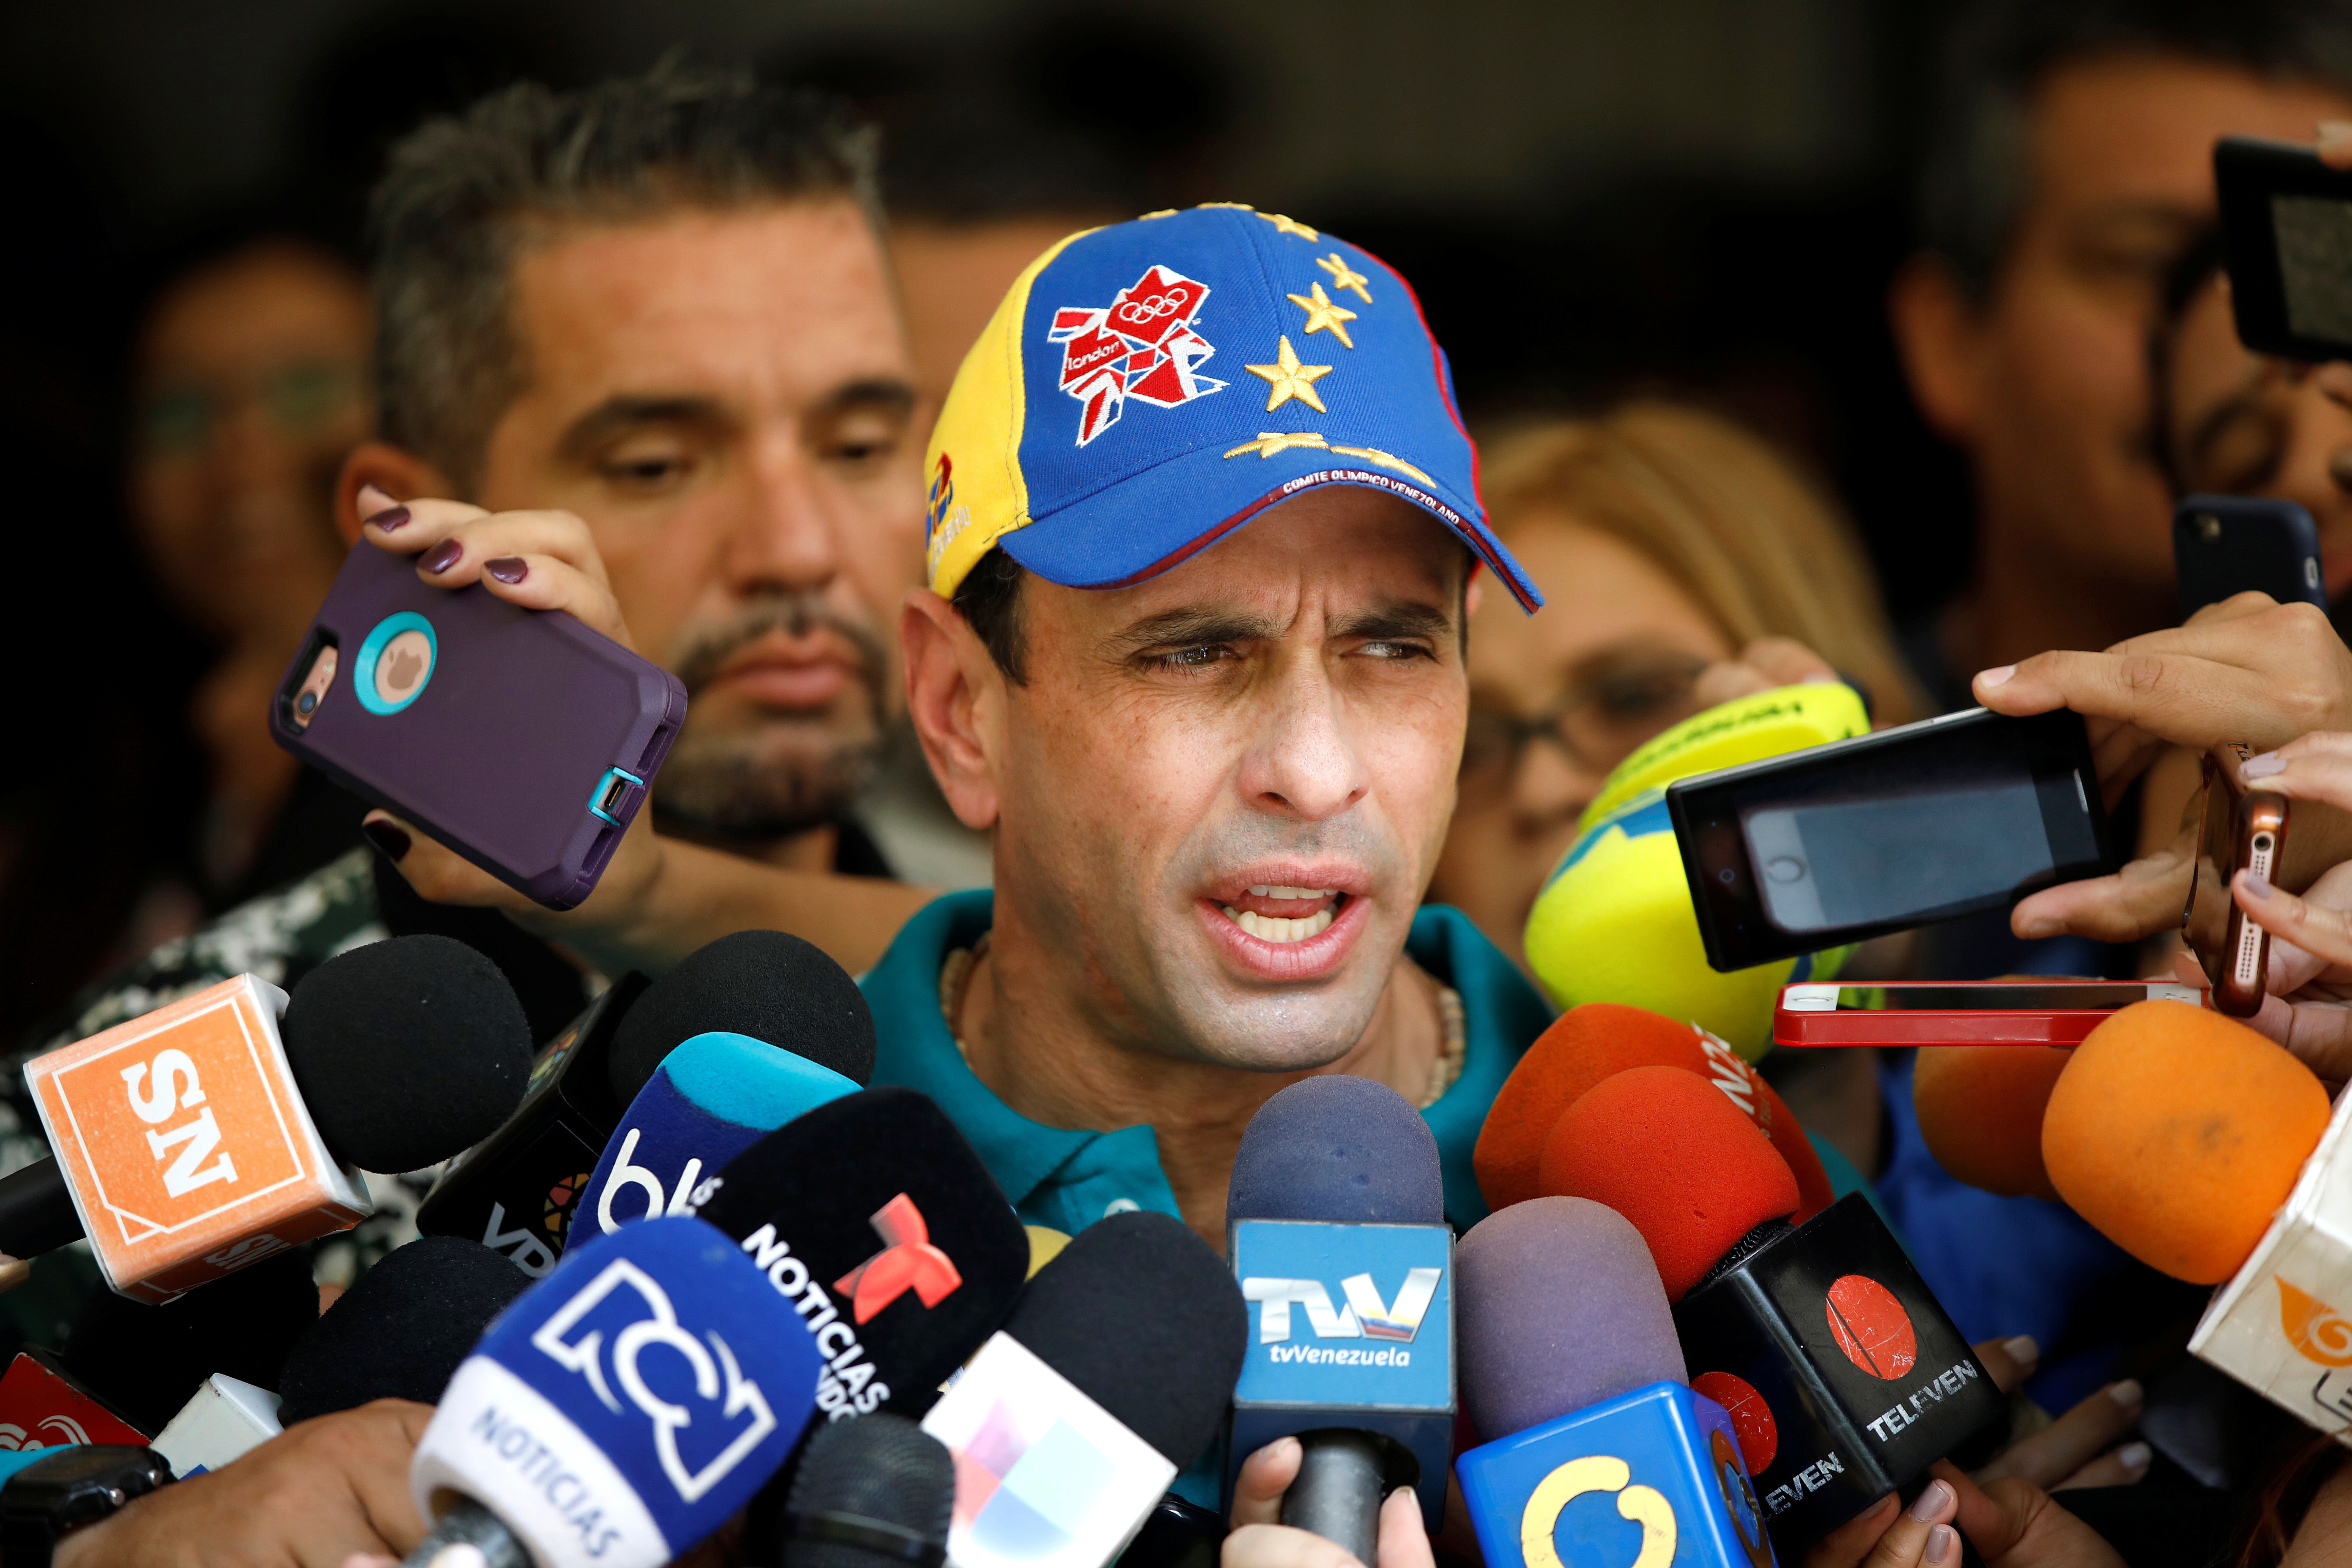 Venezuela's opposition leader Henrique Capriles speaks to the media after casting his vote during nationwide elections for new governors on Oct. 15, 2017.